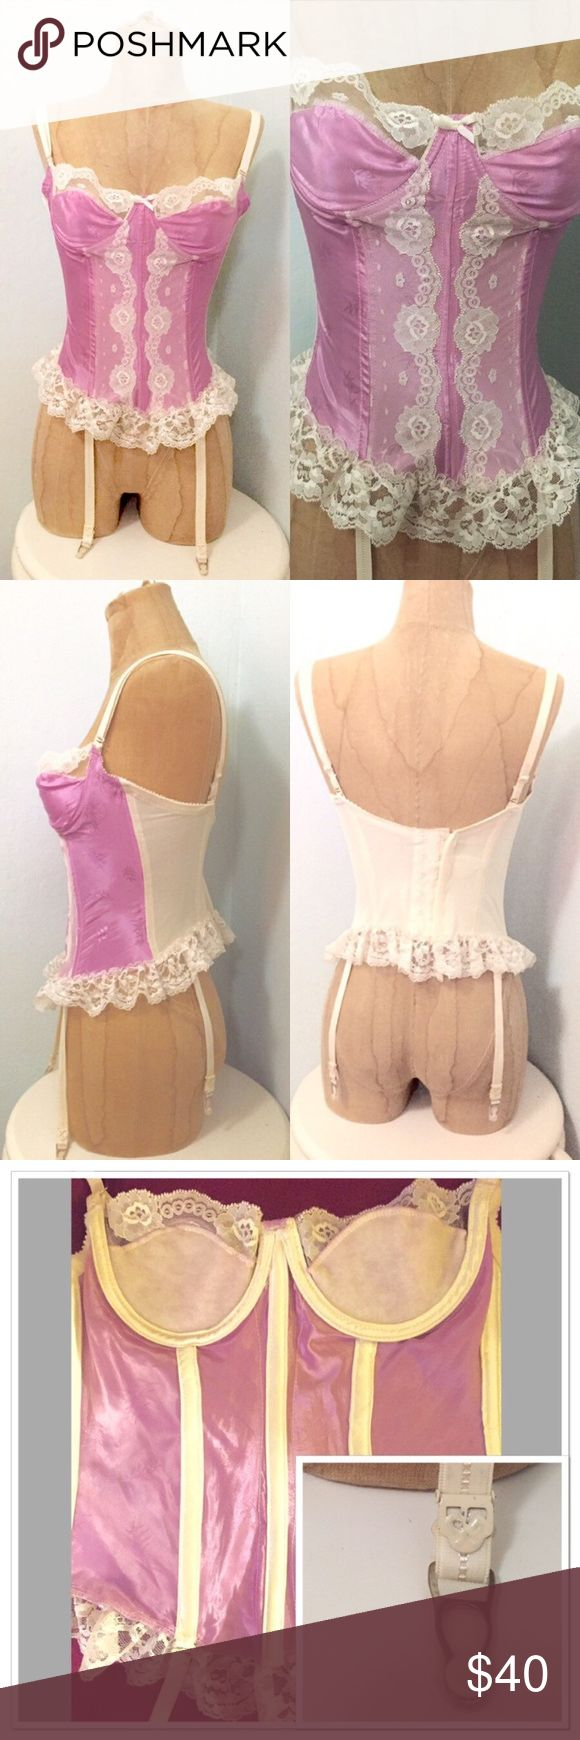 """Vintage Pastel Lavender Corset Unique satin fabric with embroidered detail in material. Cream lace trim, garters attached, 6-hook closure along back, 2 sizes adjustable. Adjustable garter and straps as well. Last pic shows with a flash camera. Color is more pastel in real life.  -Label: Sabrina -Marked Size: 34 -Estimated Size: XS, A-B Cup -Material: Nylon -Condition: Some wear and age, but great shape. -Measurements Are Taken While Flat: -Cup to Cup: 12"""" -Width: 14"""" -Waist: 13""""-14""""…"""